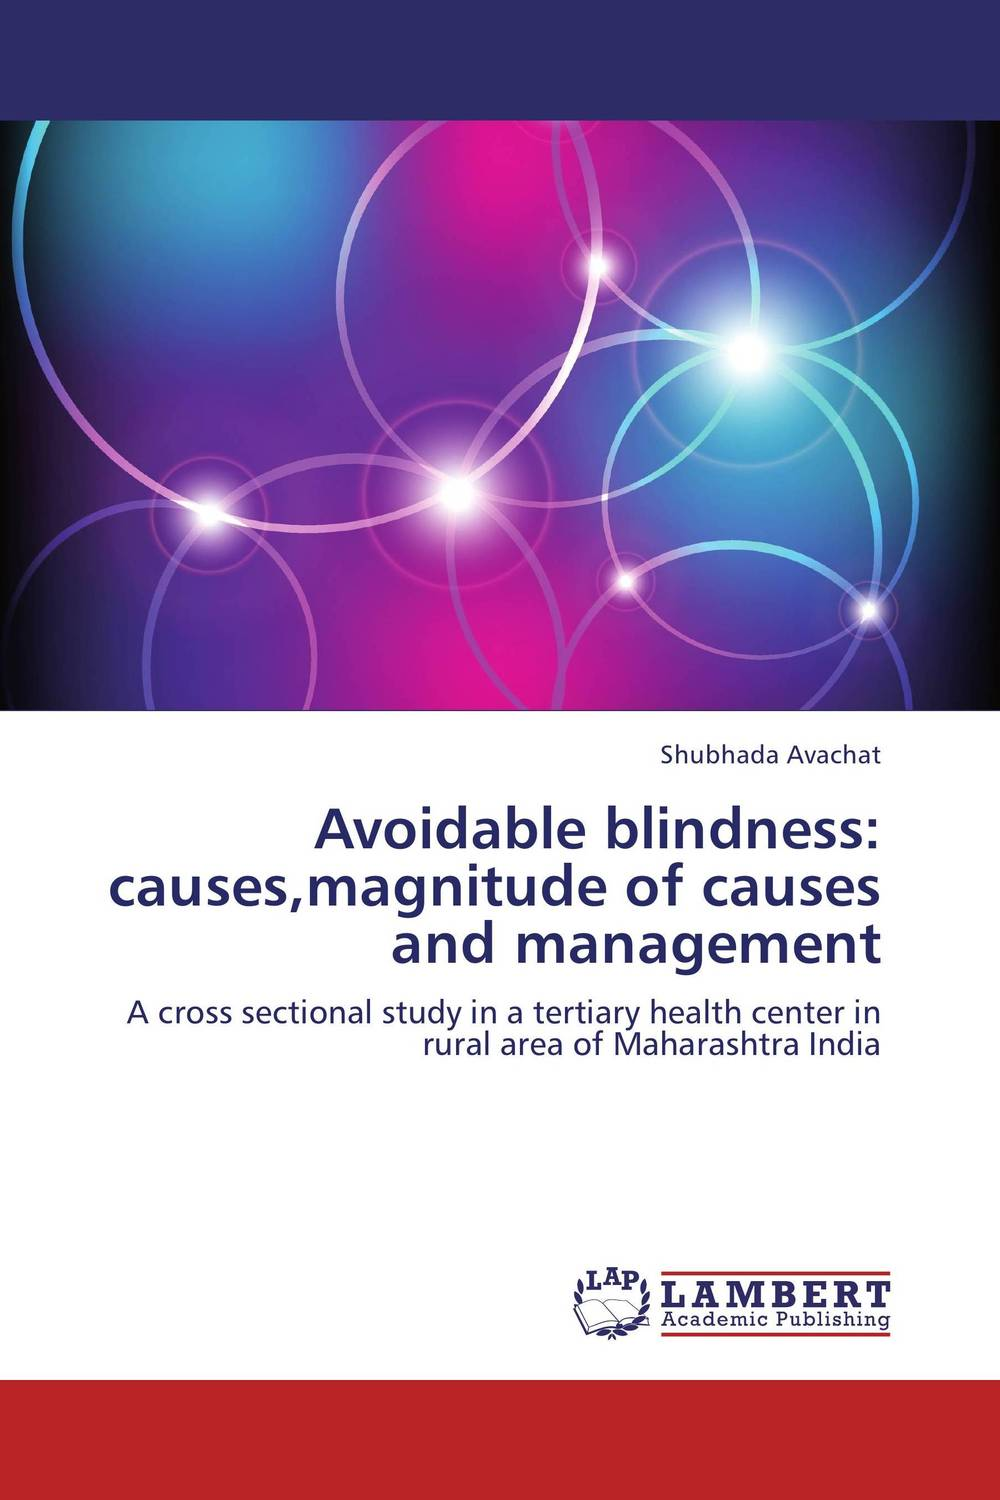 Avoidable blindness: causes,magnitude of causes and management